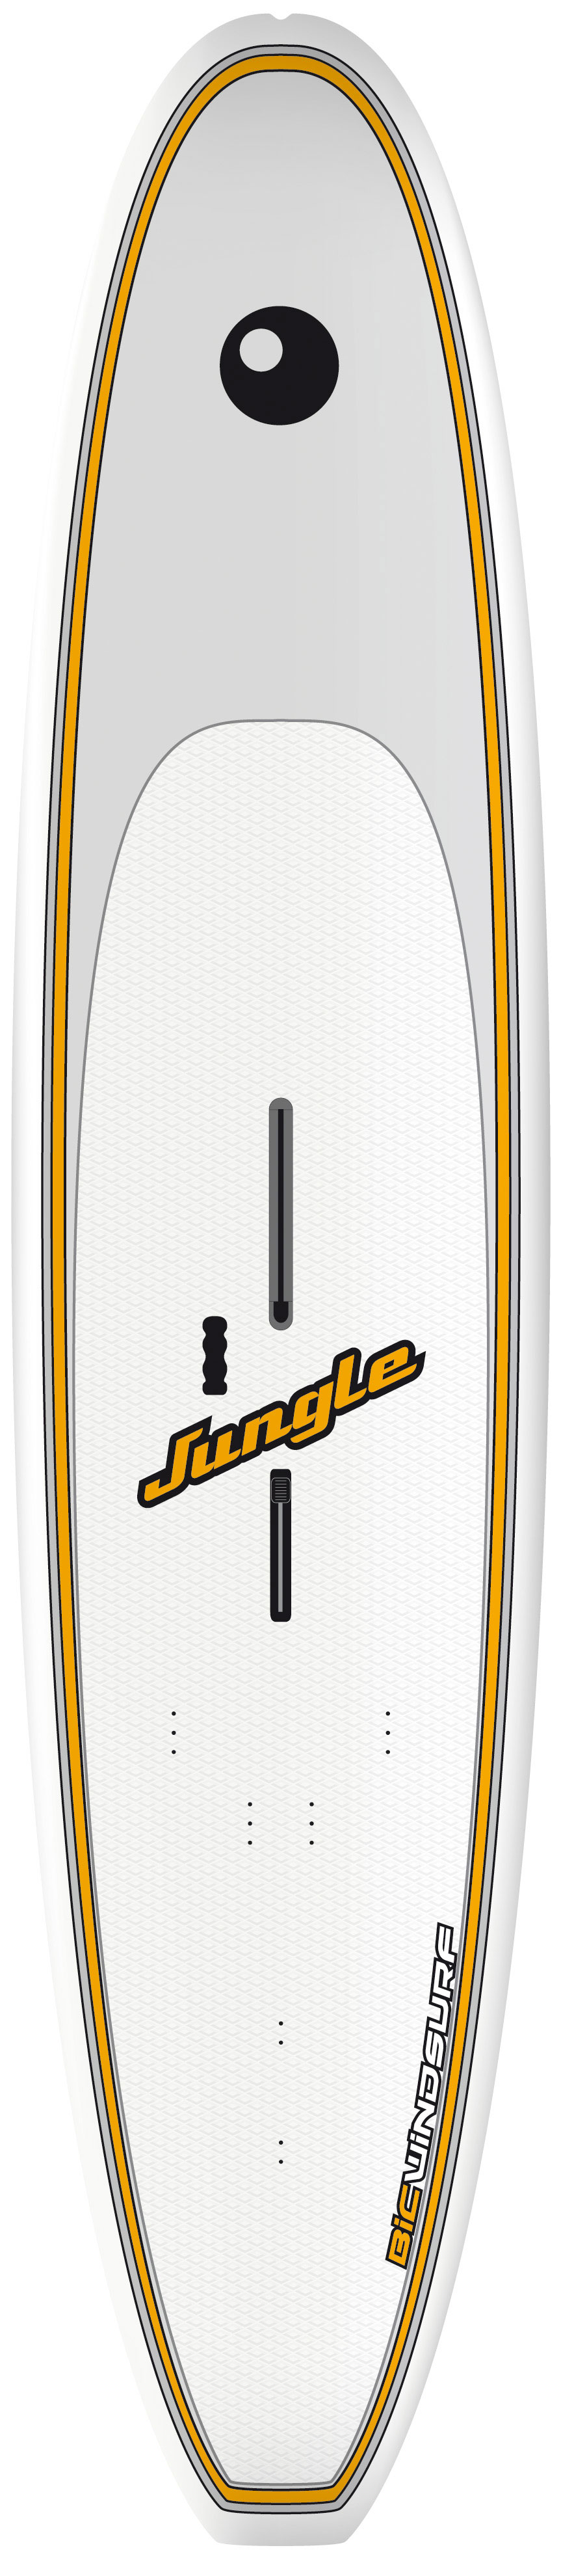 "Wake This Bic Jungle Wind SUP Board is both extremely durable and very versatile. This board was built tough as nails. It can take short and tall waves alike. You will surely not have to replace it any time soon. Bic is one of the most reliable and trustworthy brands in the industry. You can rest assured that this is a very high quality windsurfing board. You will not be disappointed. Best of all, the price tag is affordable!Key Features of the Bic Big Jungle Wind Sup Board 10' 10"": Length: 10' 10"" (330cm) Width: 72cm Thickness: 13cmVolume: 175 Liters Weight: 27.5 lbs/12.5 kg Fin: G10 26.5 Fixbox: US System Dagger Saber - $1,199.95"